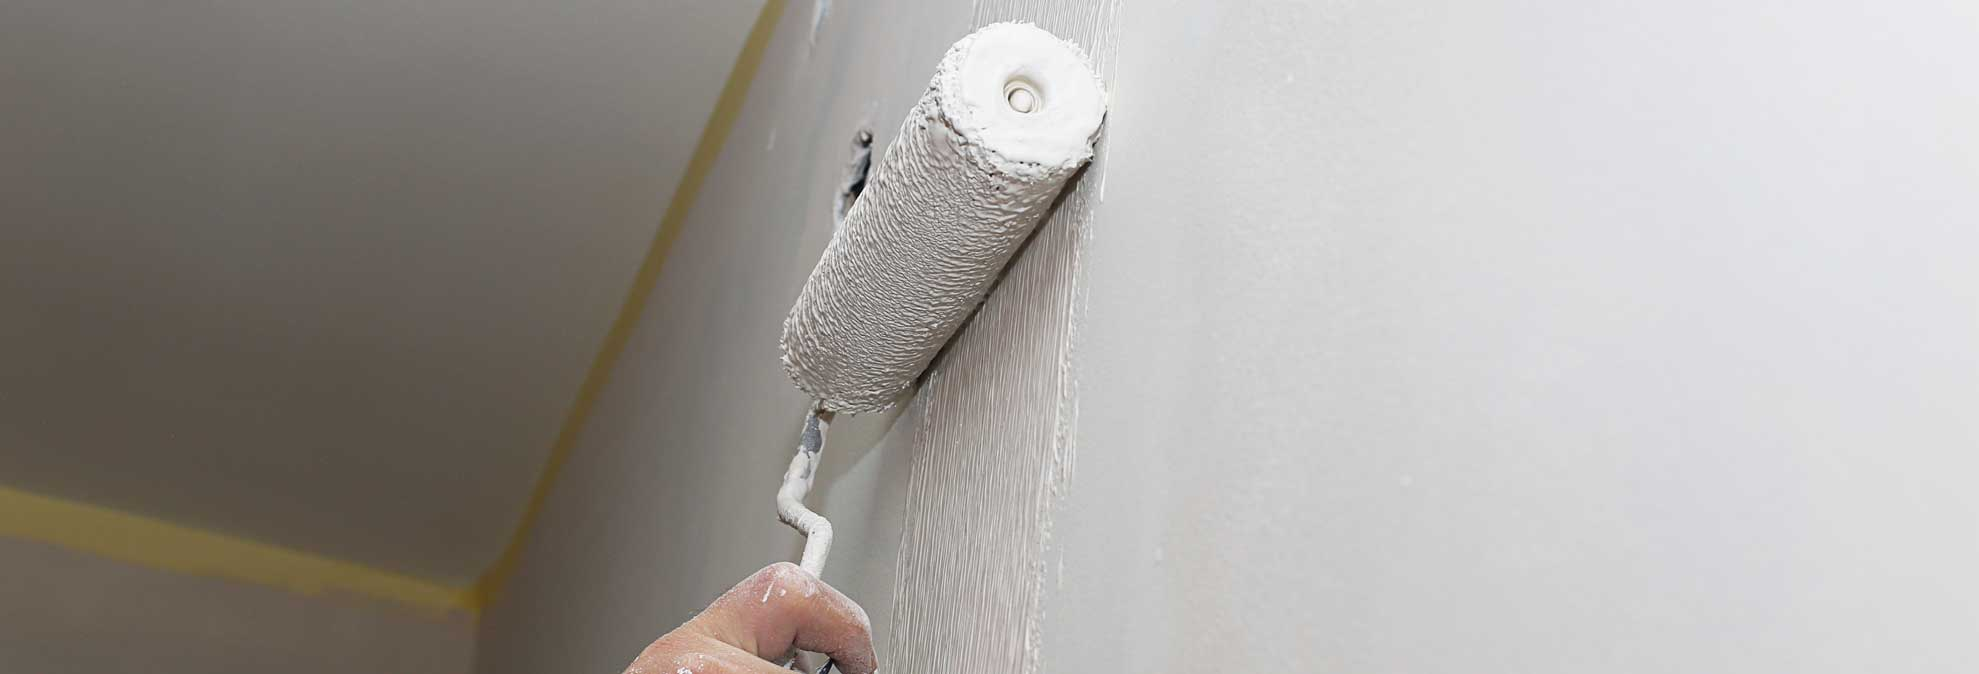 4 Easy Fixes For Interior Painting Mistakes Consumer Reports